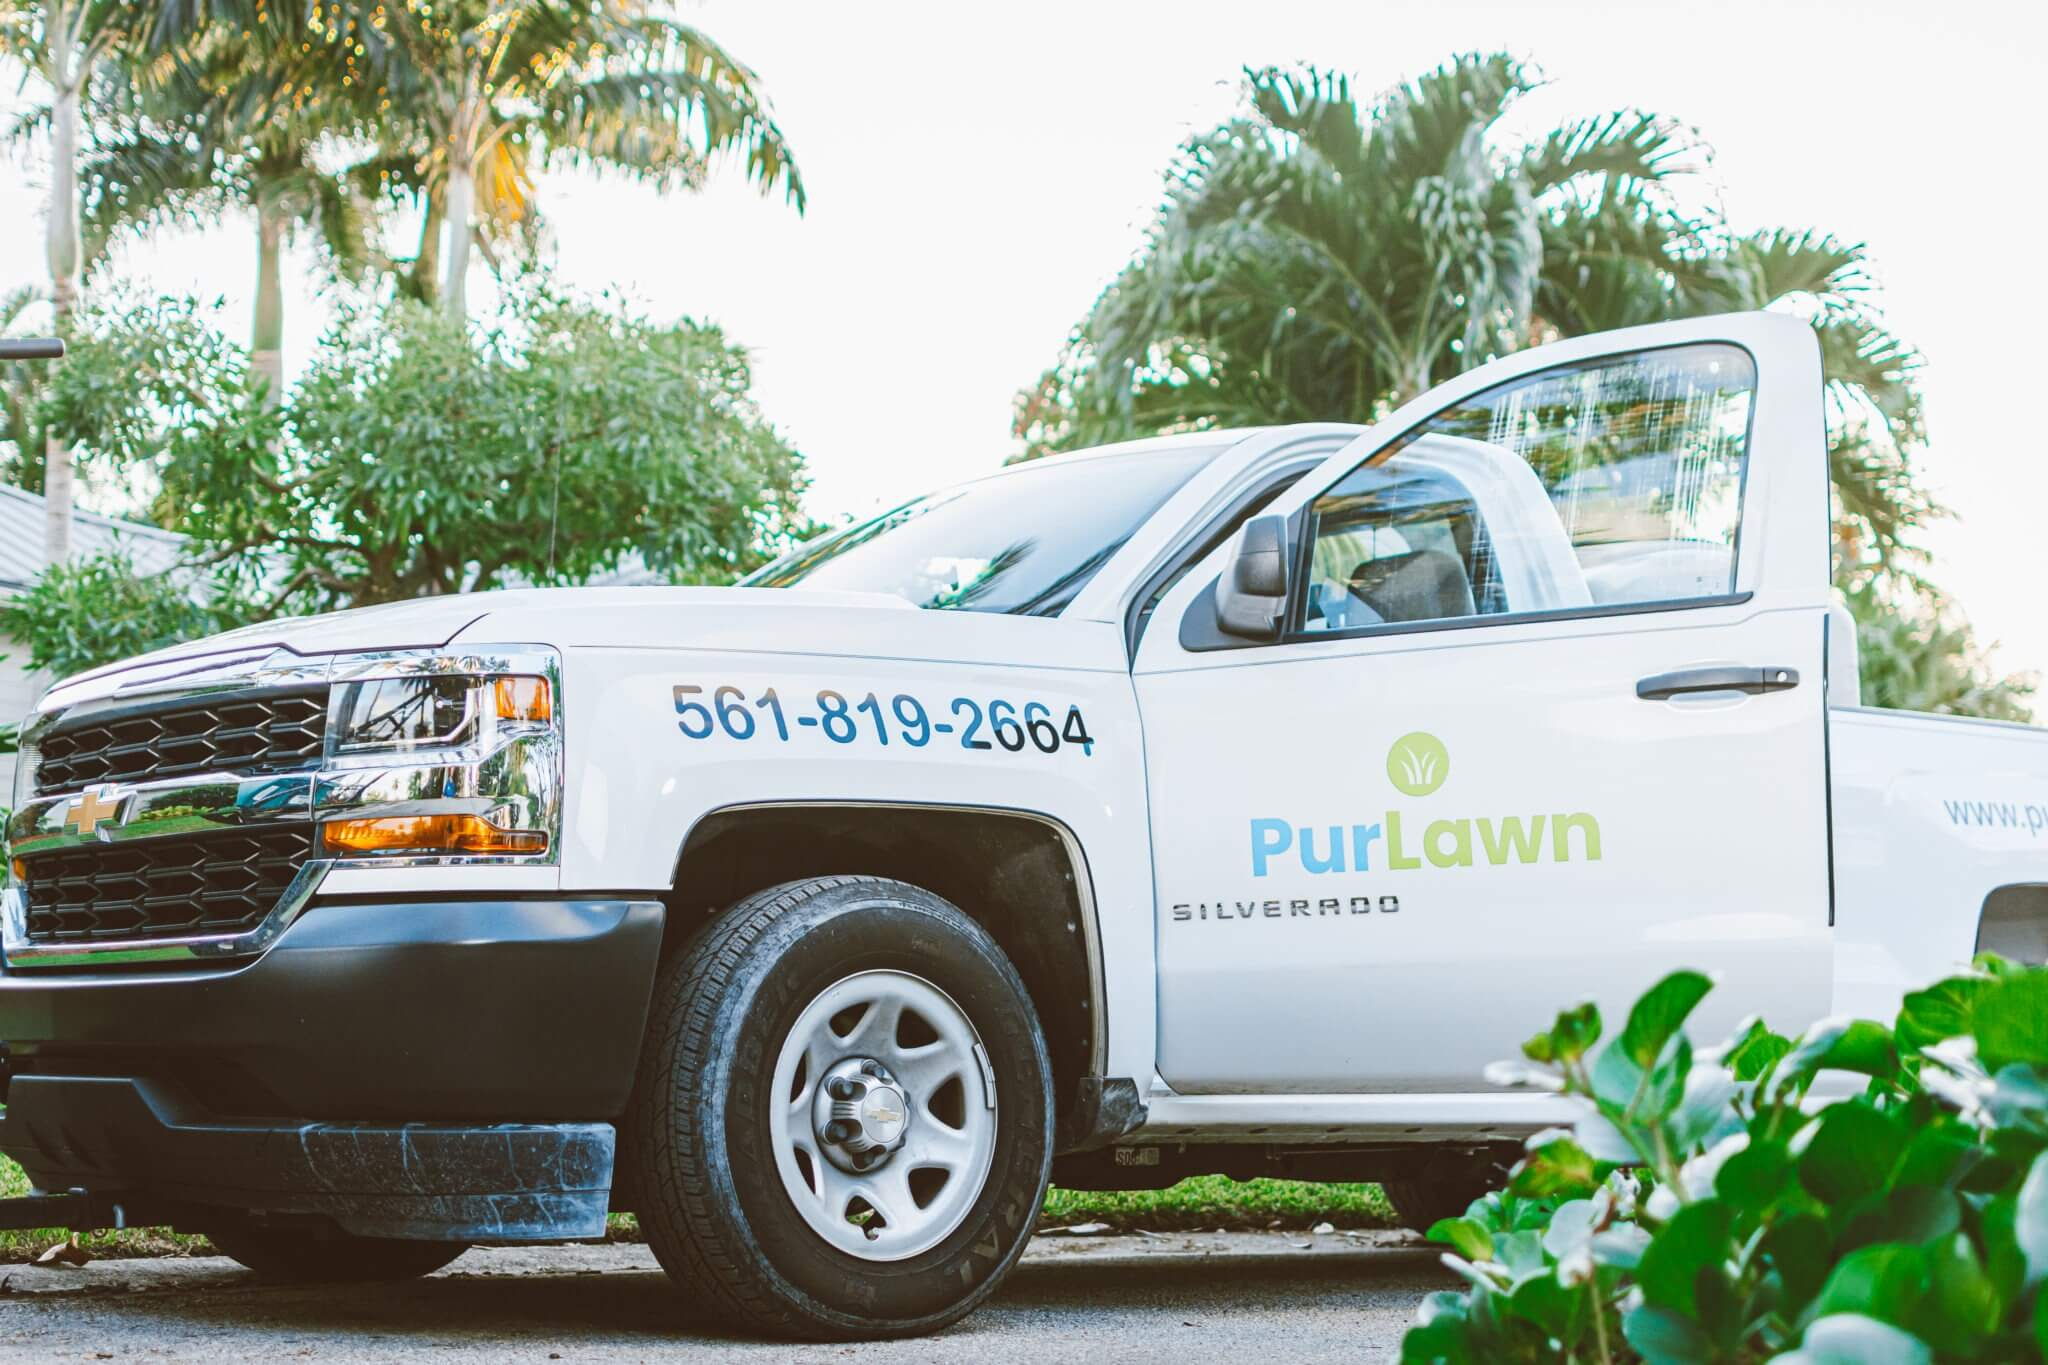 PurLawn - Lawn Care Success Stories